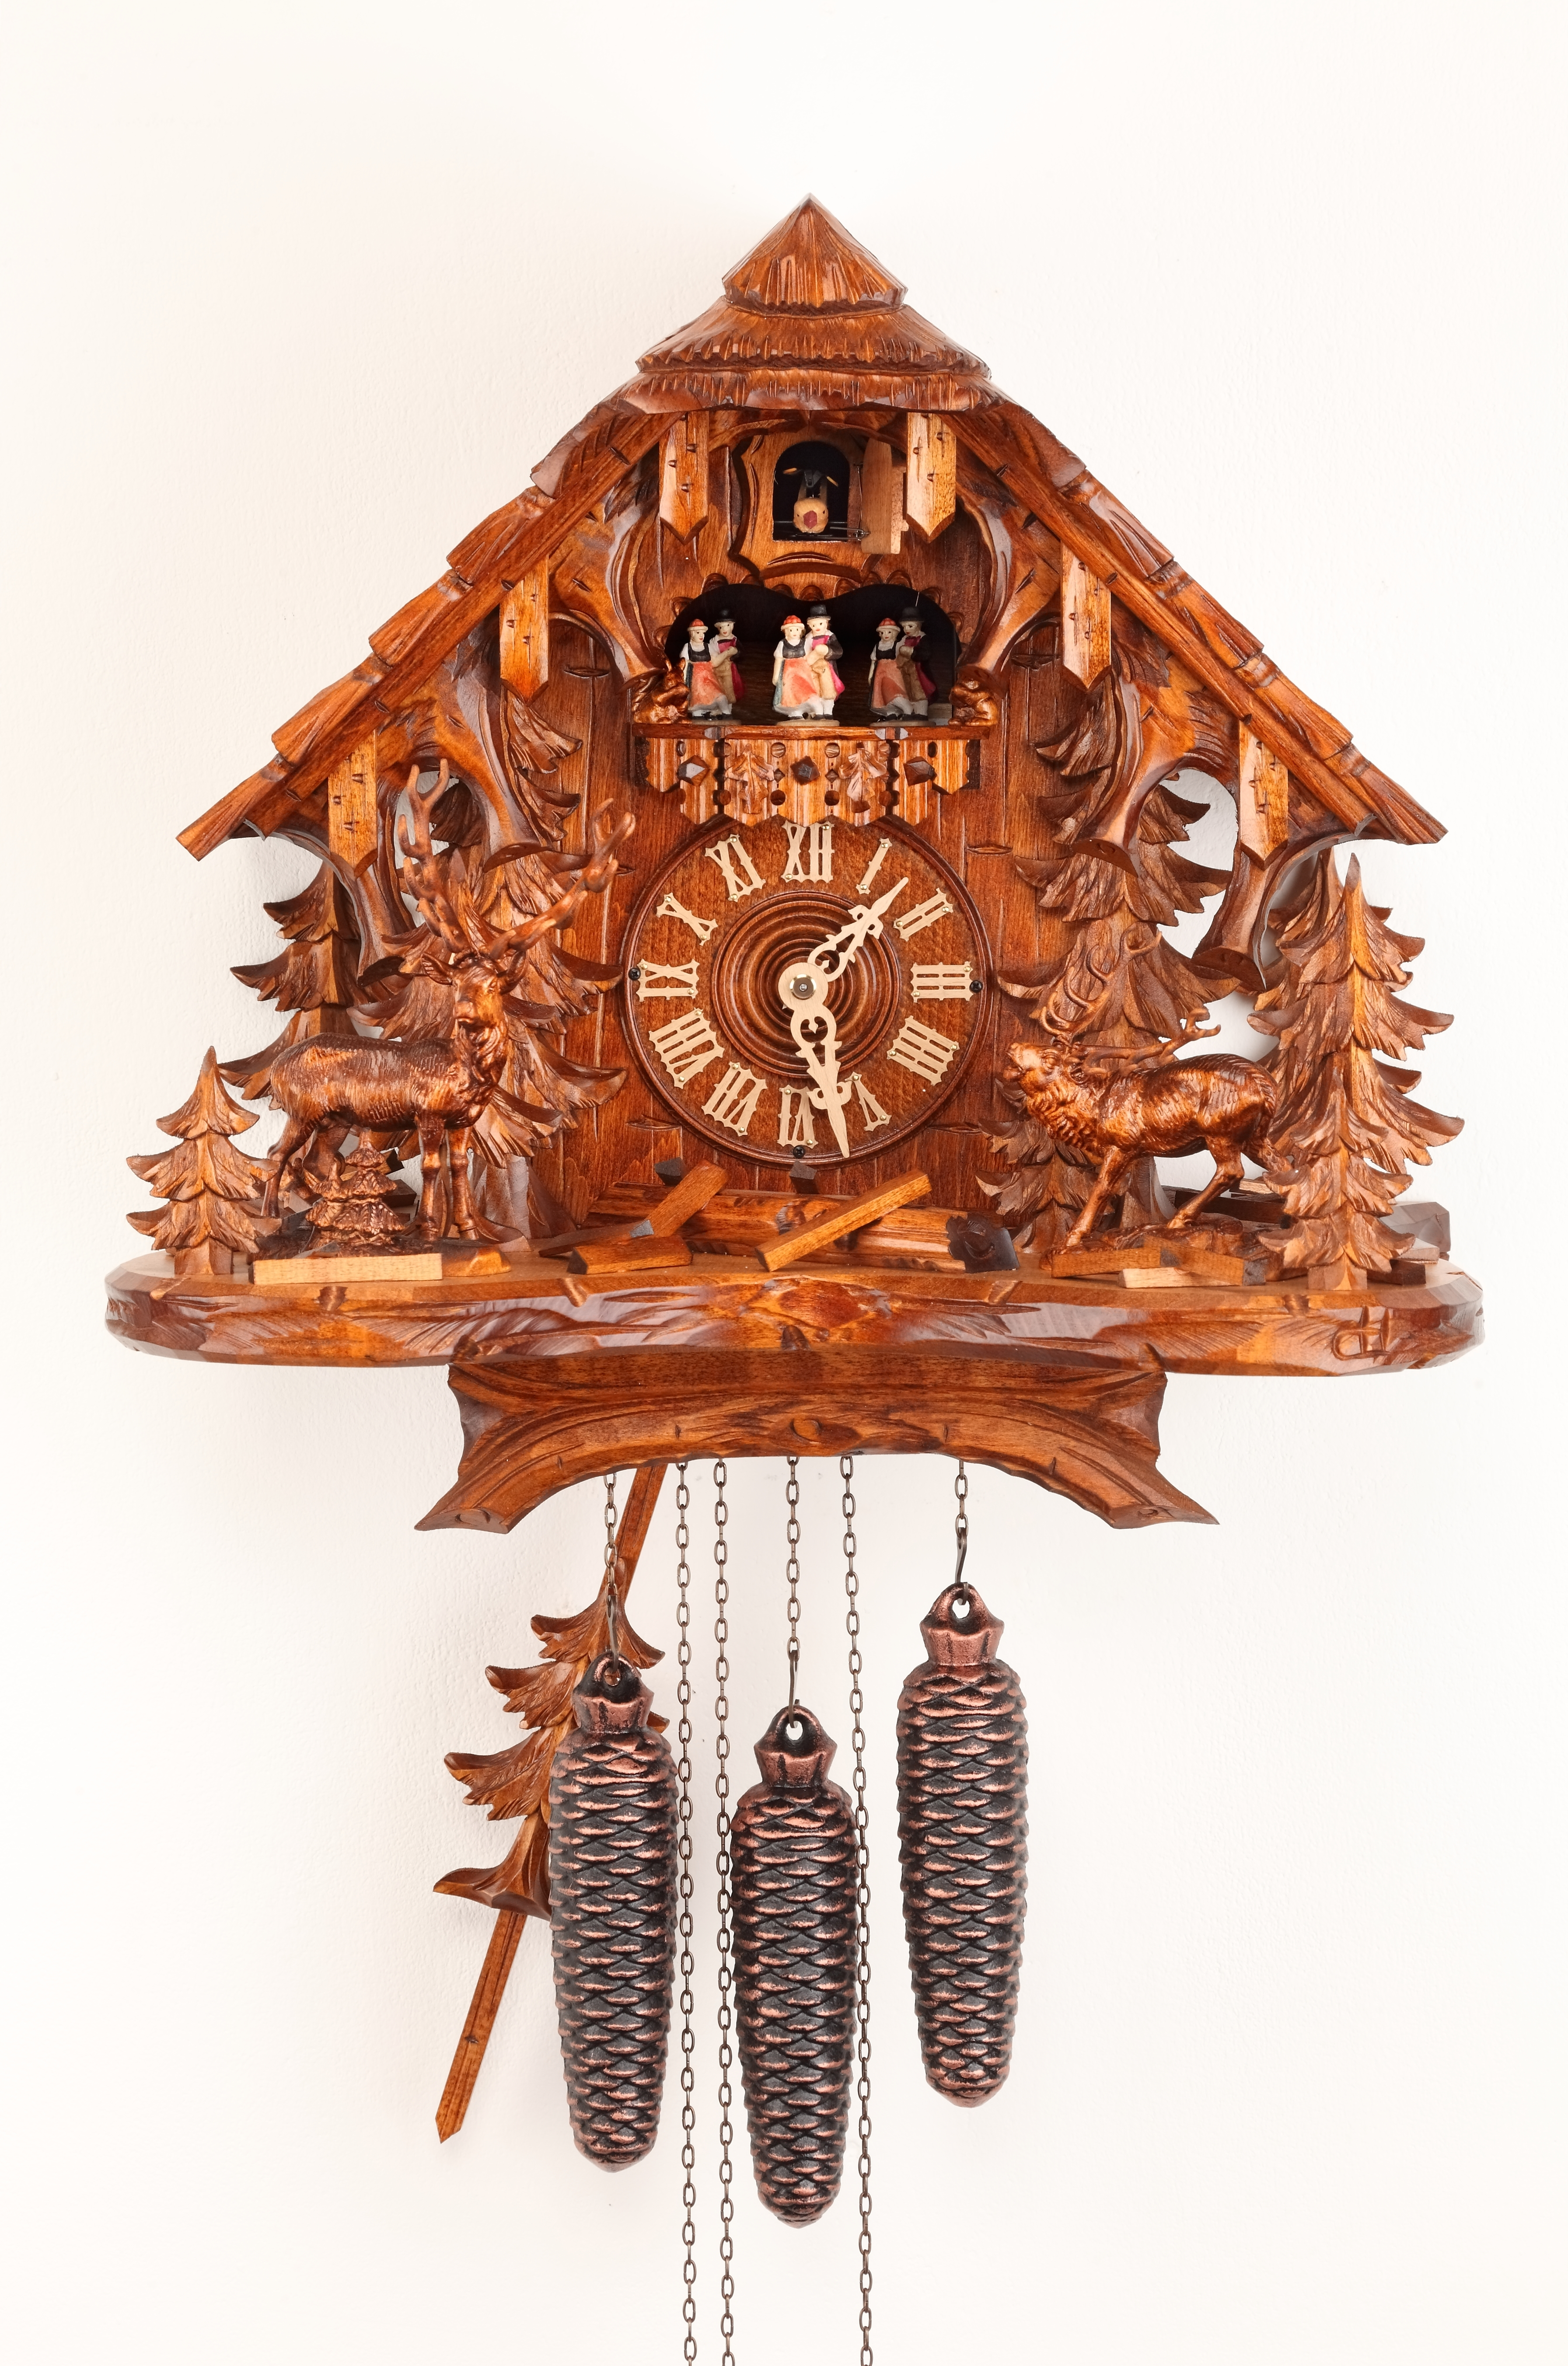 8 Days Music Dancer  Cuckoo Clock Black Forest House with deers